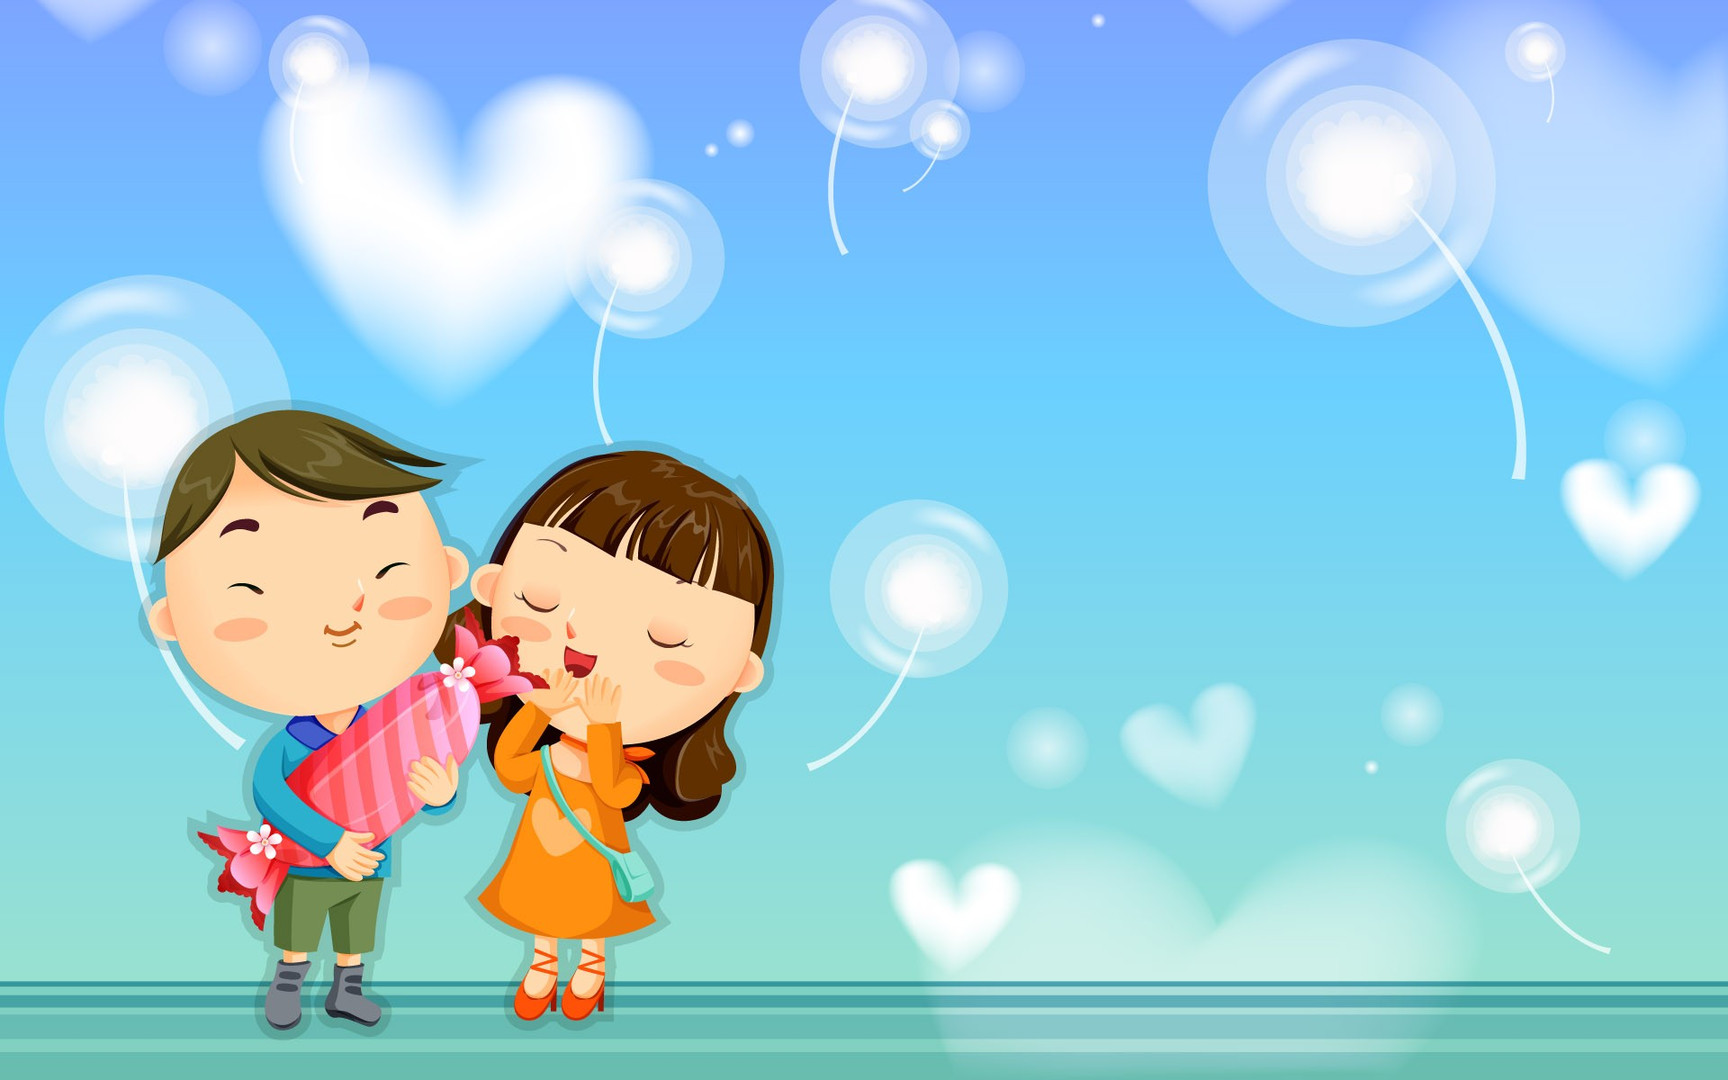 Best Love cartoon Wallpaper : cartoon Love Wallpapers - Wallpaper, High Definition, High Quality, Widescreen